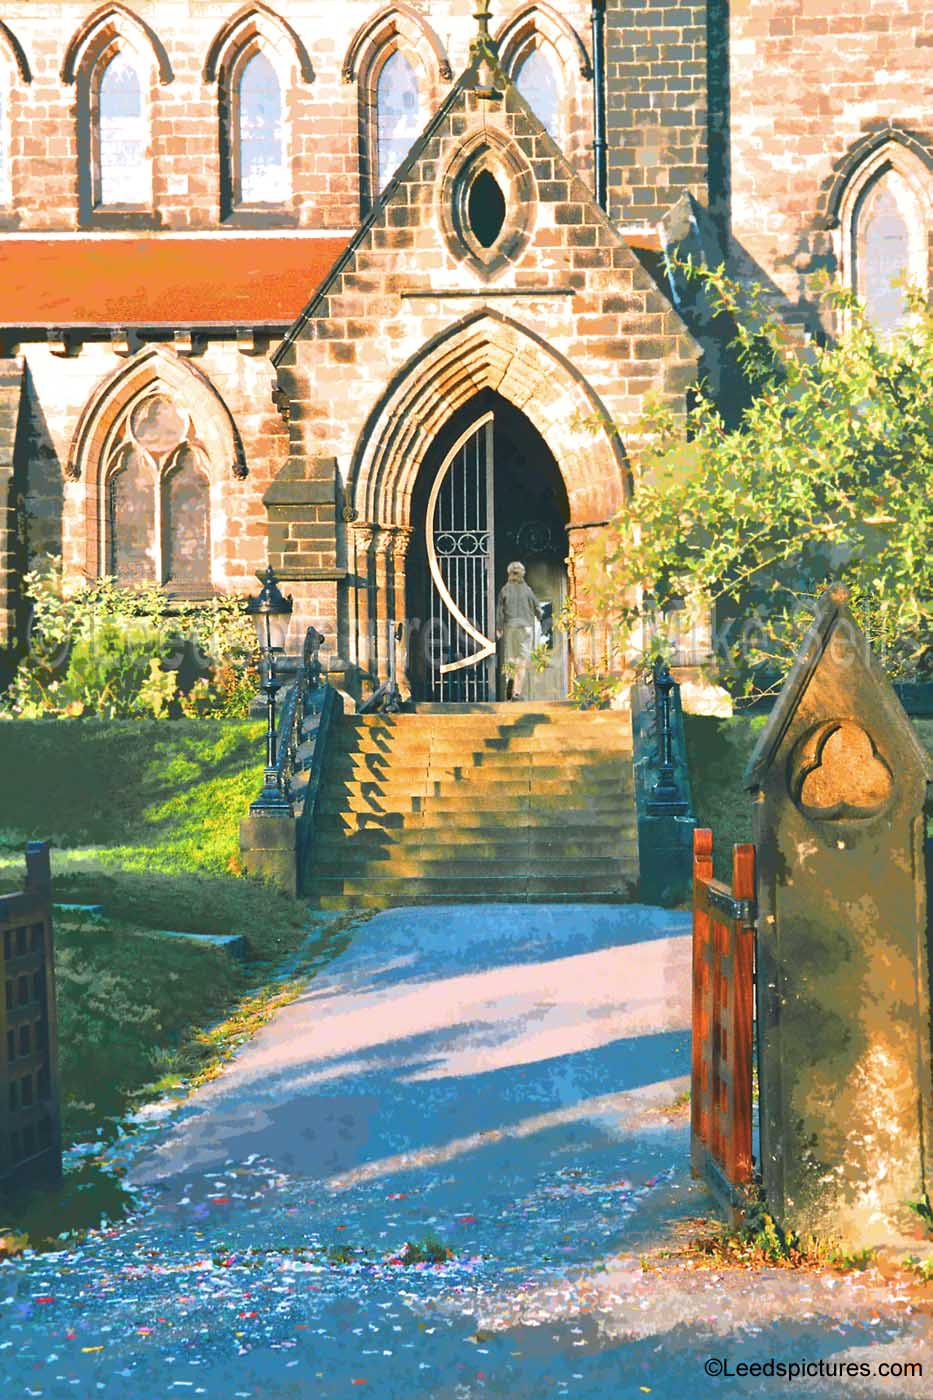 St Chad's - after a wedding     Early morning, dappled light and confetti still all over the path